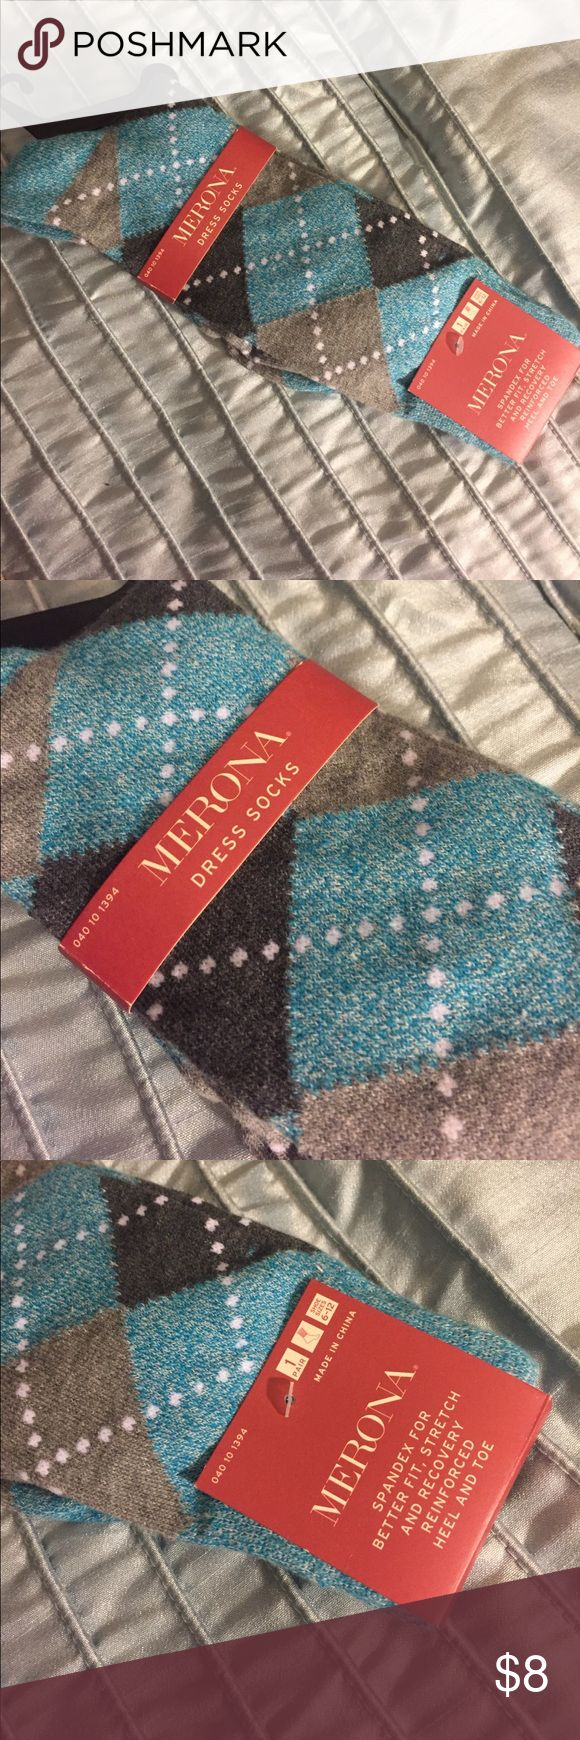 Men's dress socks NWT I bought my husband this pair of socks...twice! And waited too long to return them. NWT. Size 6-12. Nice blue and grey pattern. Offers welcome. Merona Underwear & Socks Dress Socks